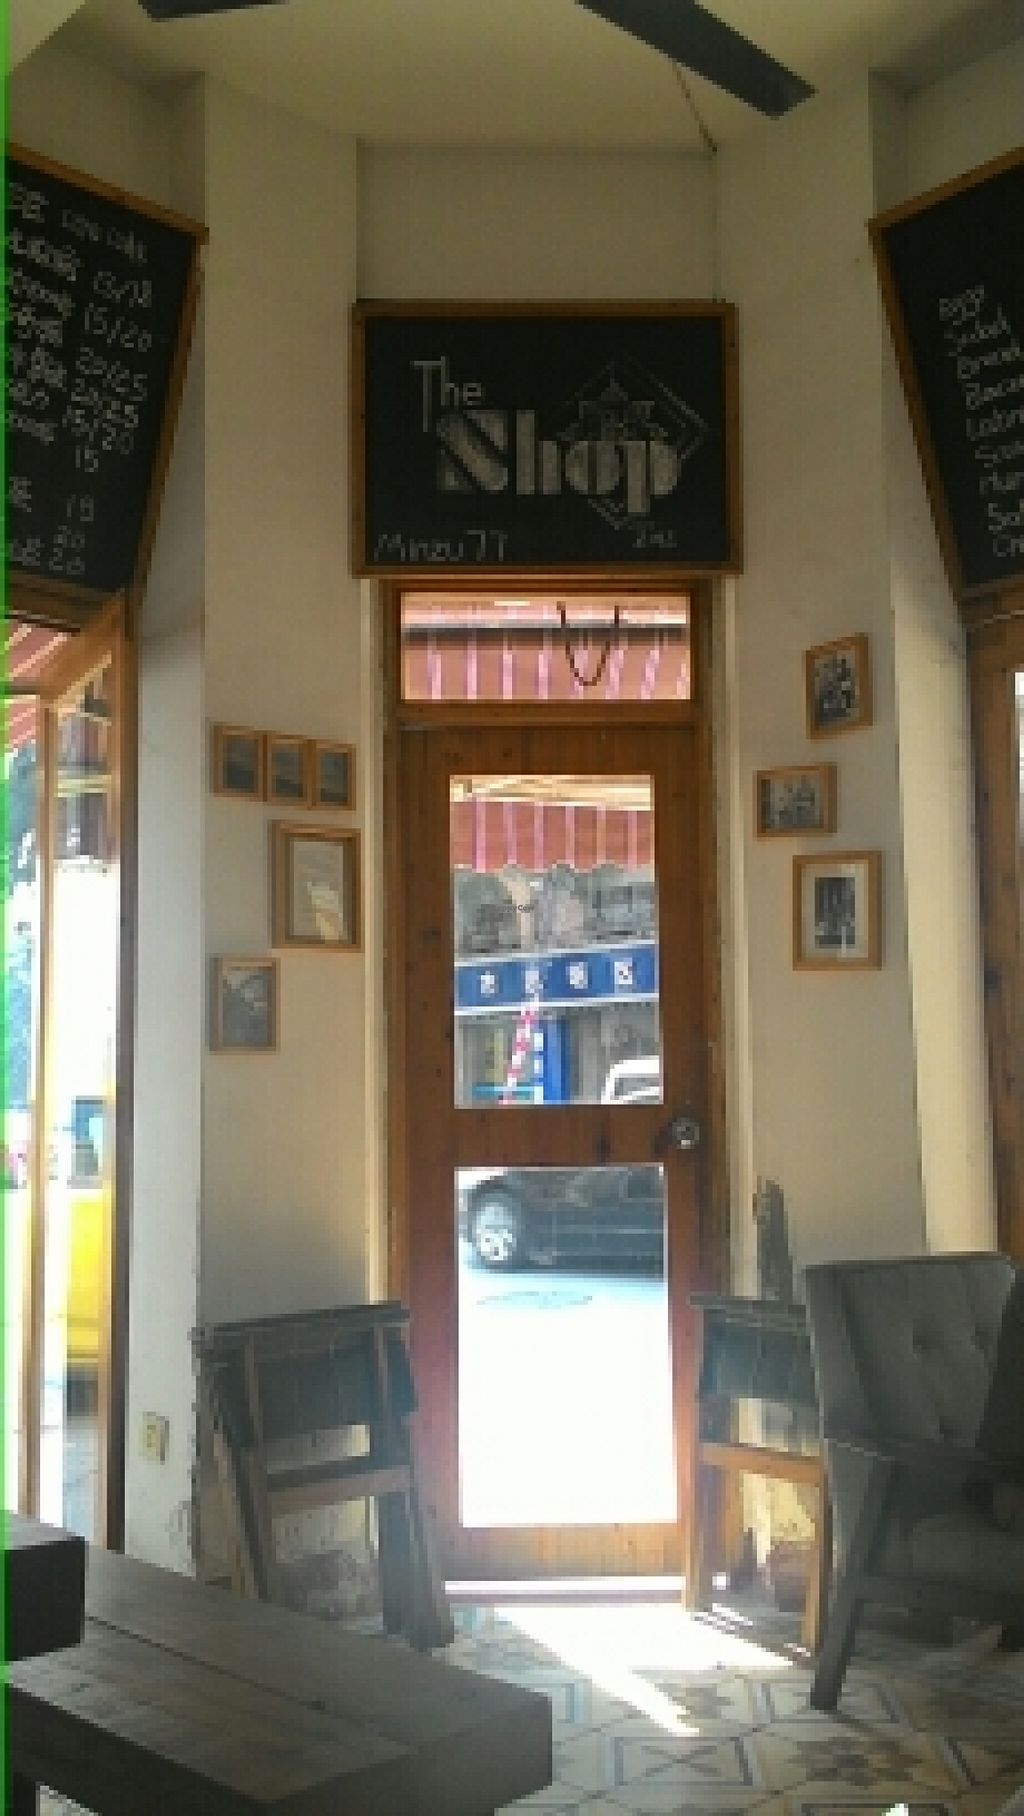 "Photo of The Shop  by <a href=""/members/profile/Olena38"">Olena38</a> <br/>The entrance. Please mind there's no singboard displayed out the shop <br/> January 1, 2016  - <a href='/contact/abuse/image/67761/130642'>Report</a>"